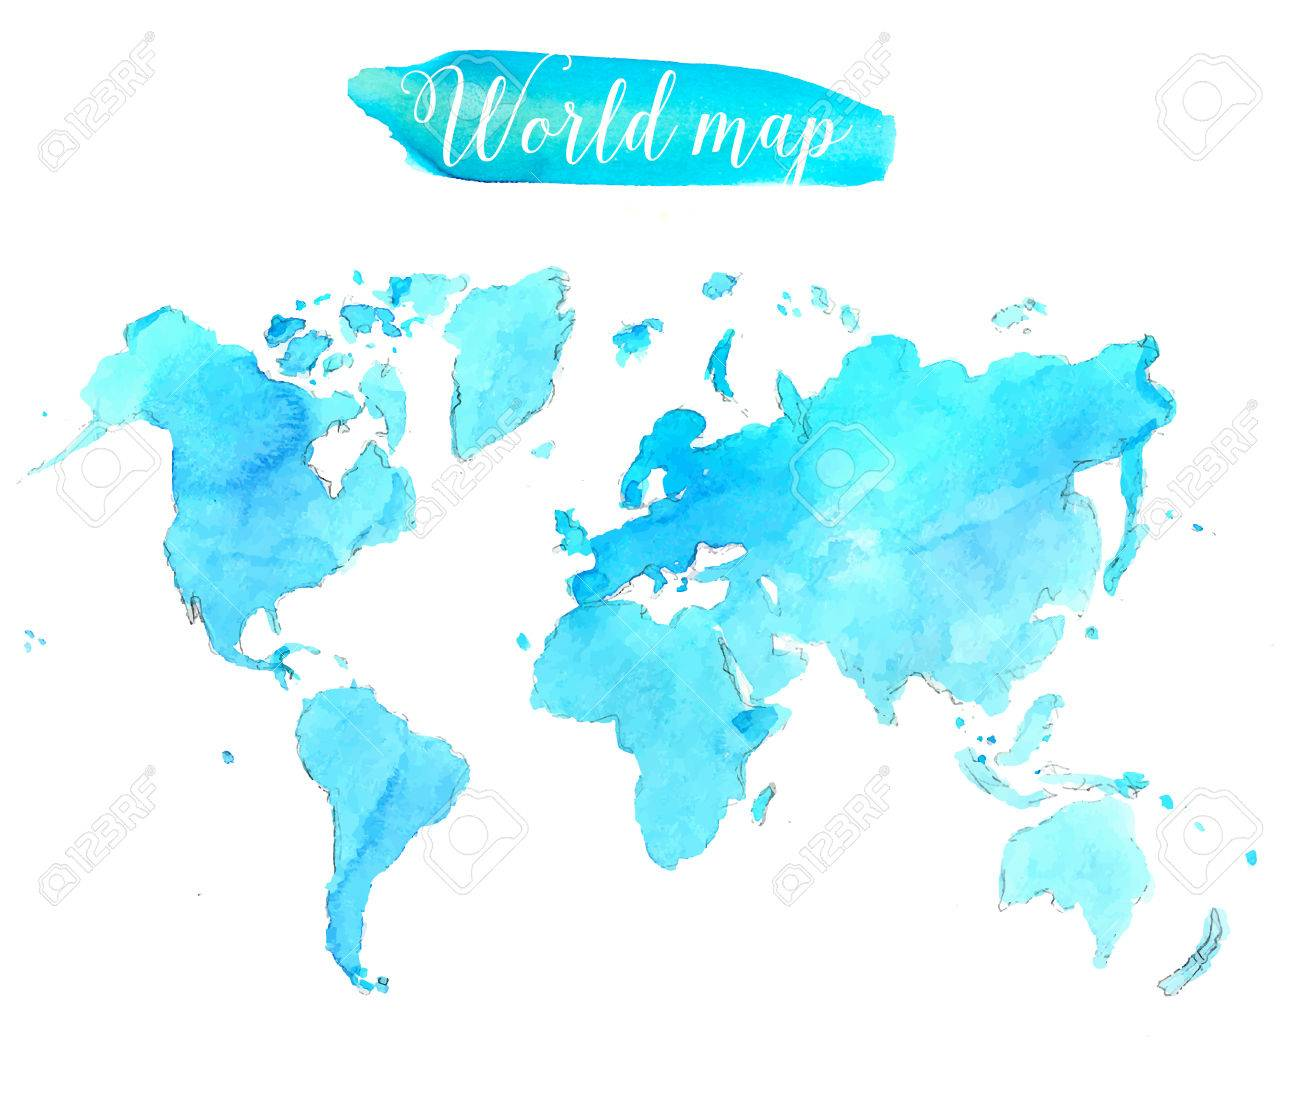 Blue watercolor world map creative illustration royalty free blue watercolor world map creative illustration stock vector 42521437 gumiabroncs Choice Image